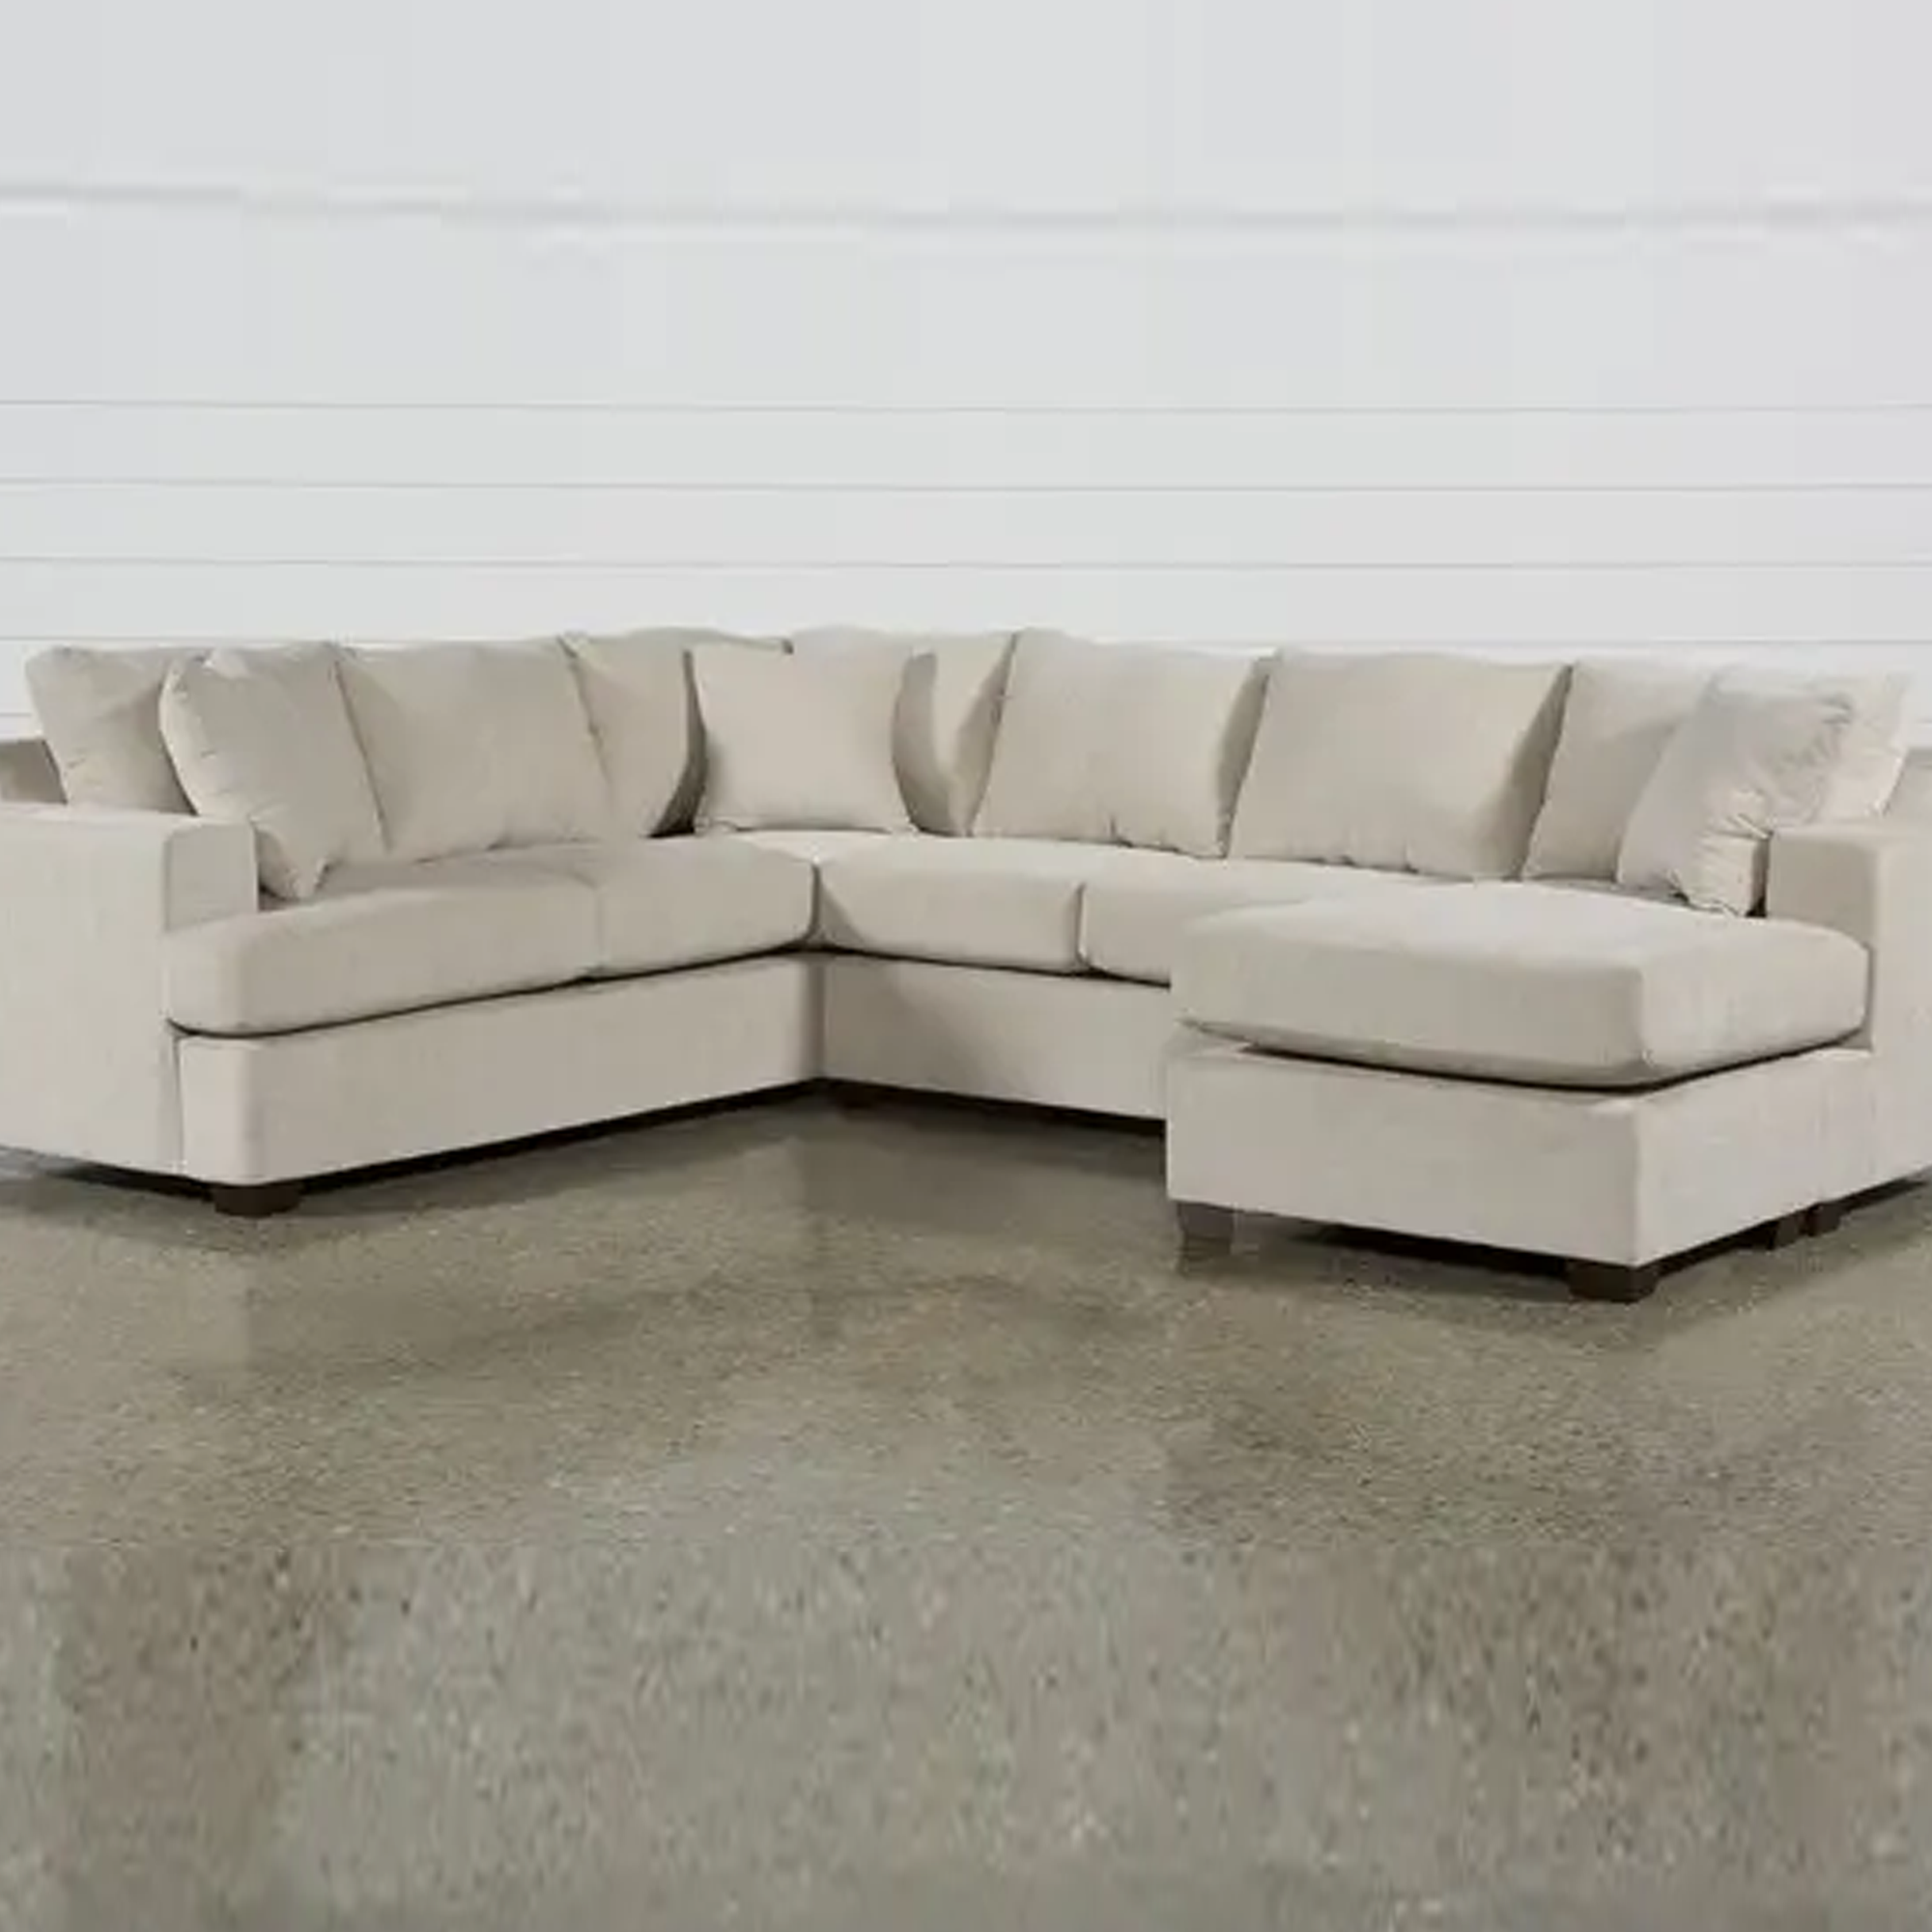 Copy of Kerri Sand Couch